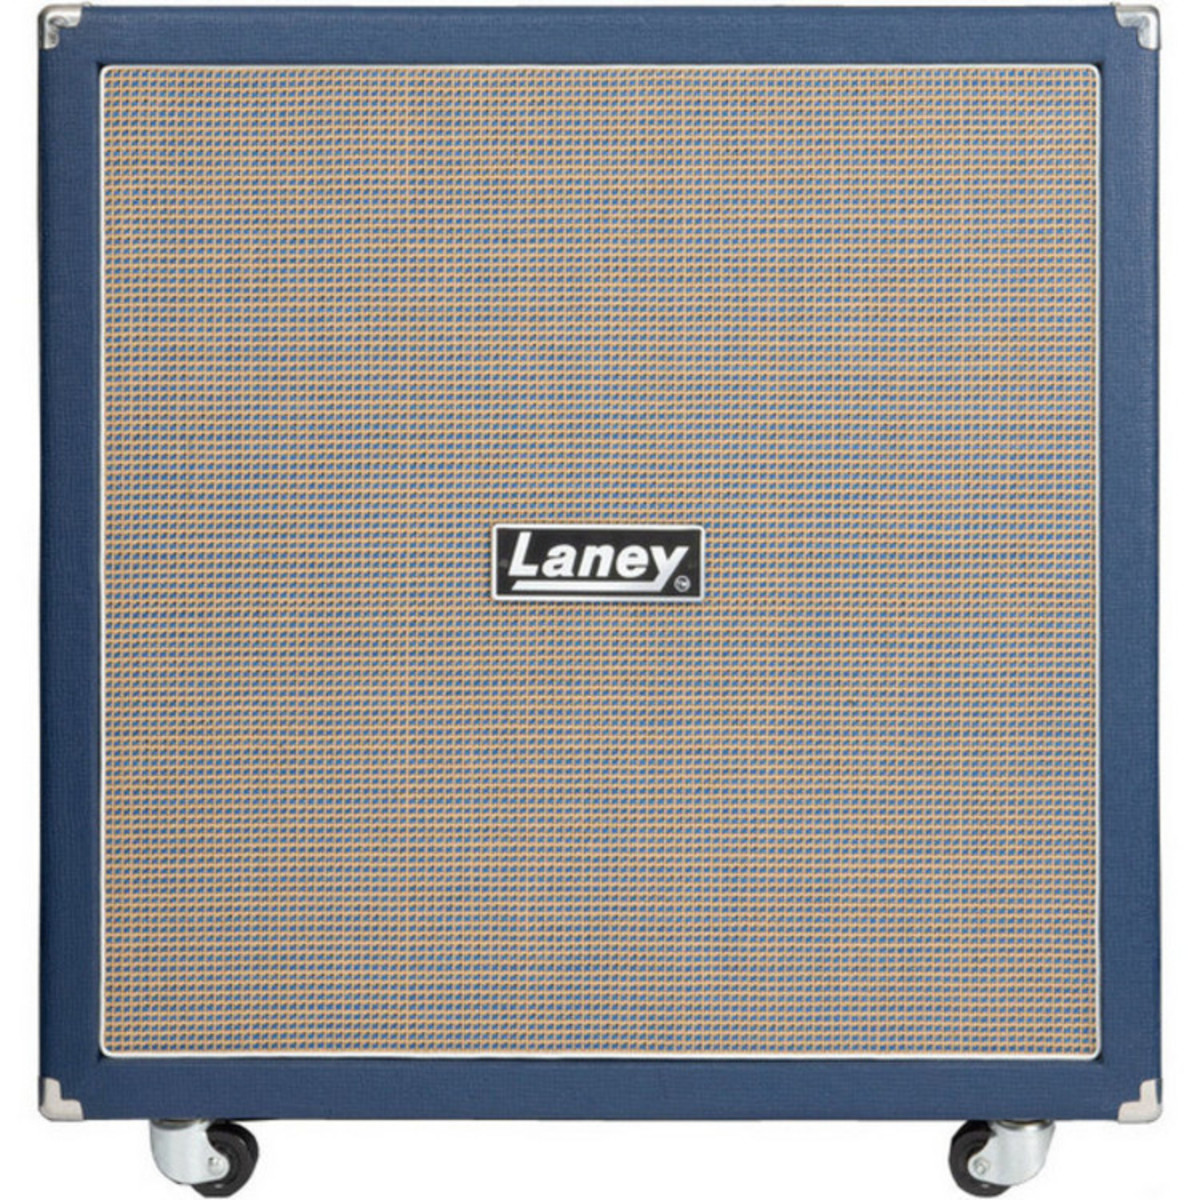 Laney L-50H Lionheart Head + L412 Cabinet Bundle, Made In The UK ...